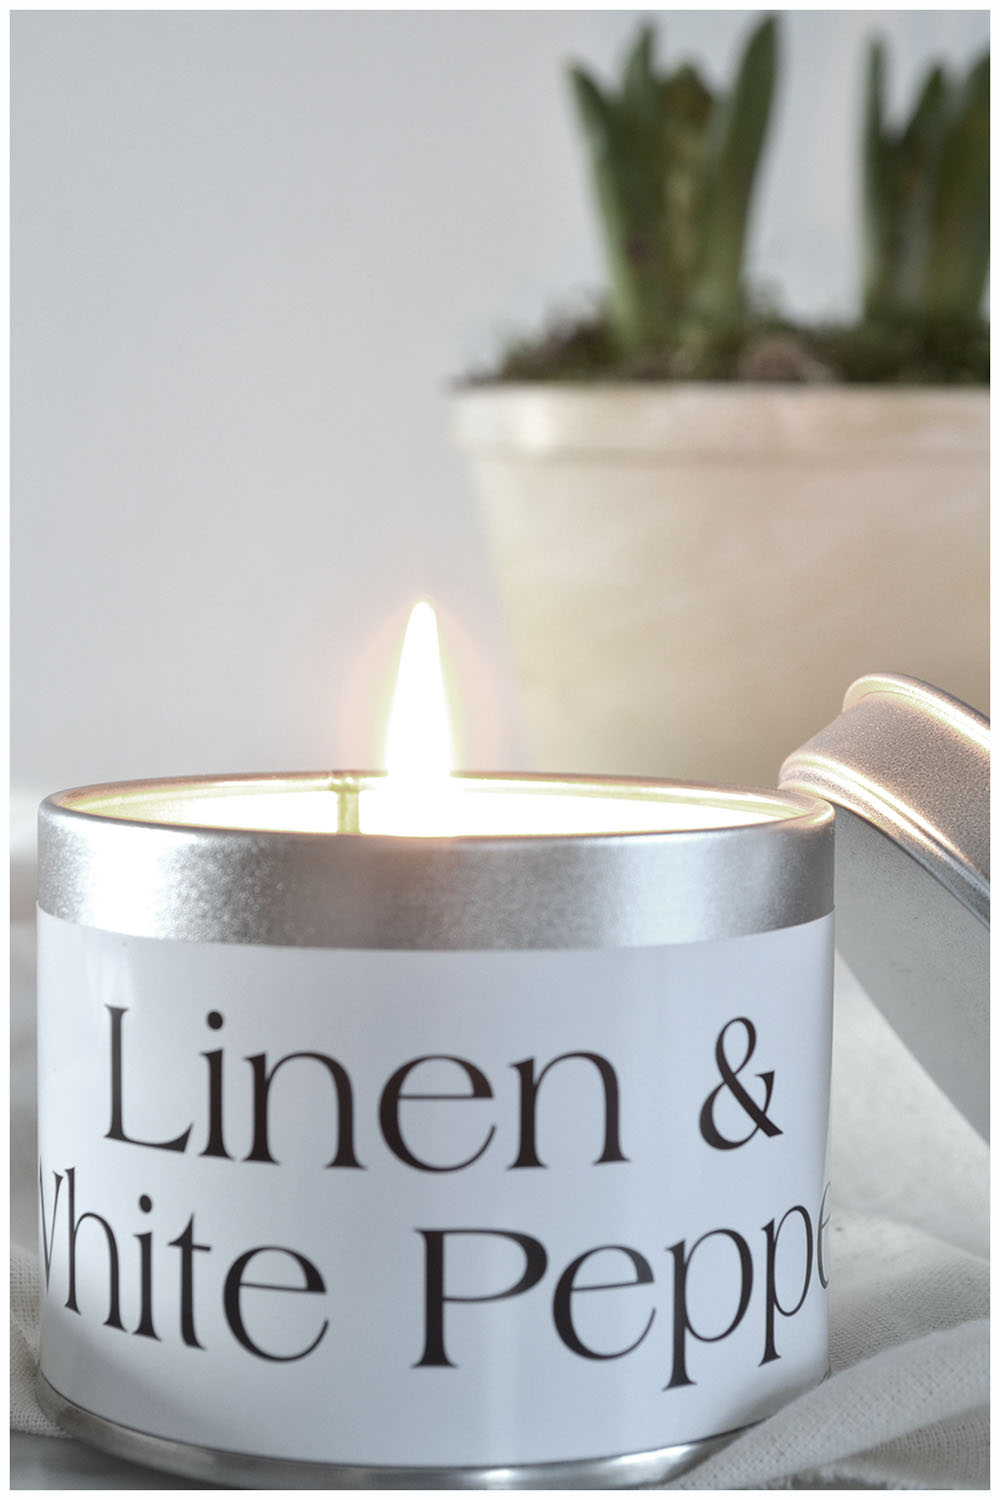 Linen & White Pepper Candle